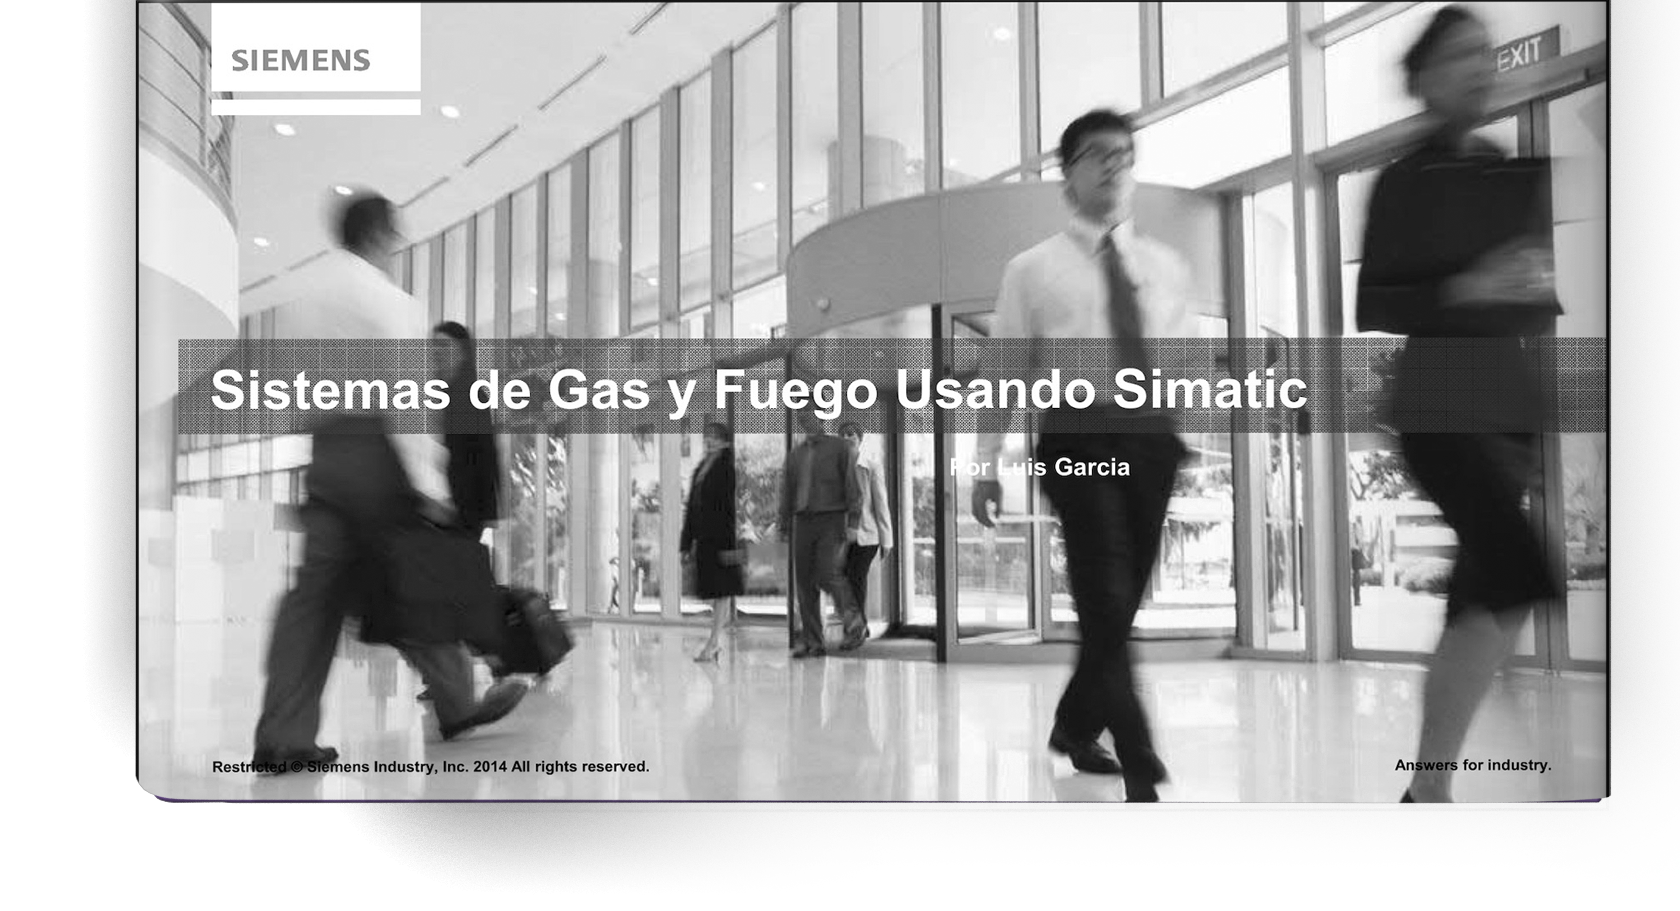 ELICO GROUP. Sistema de fuego y Gas